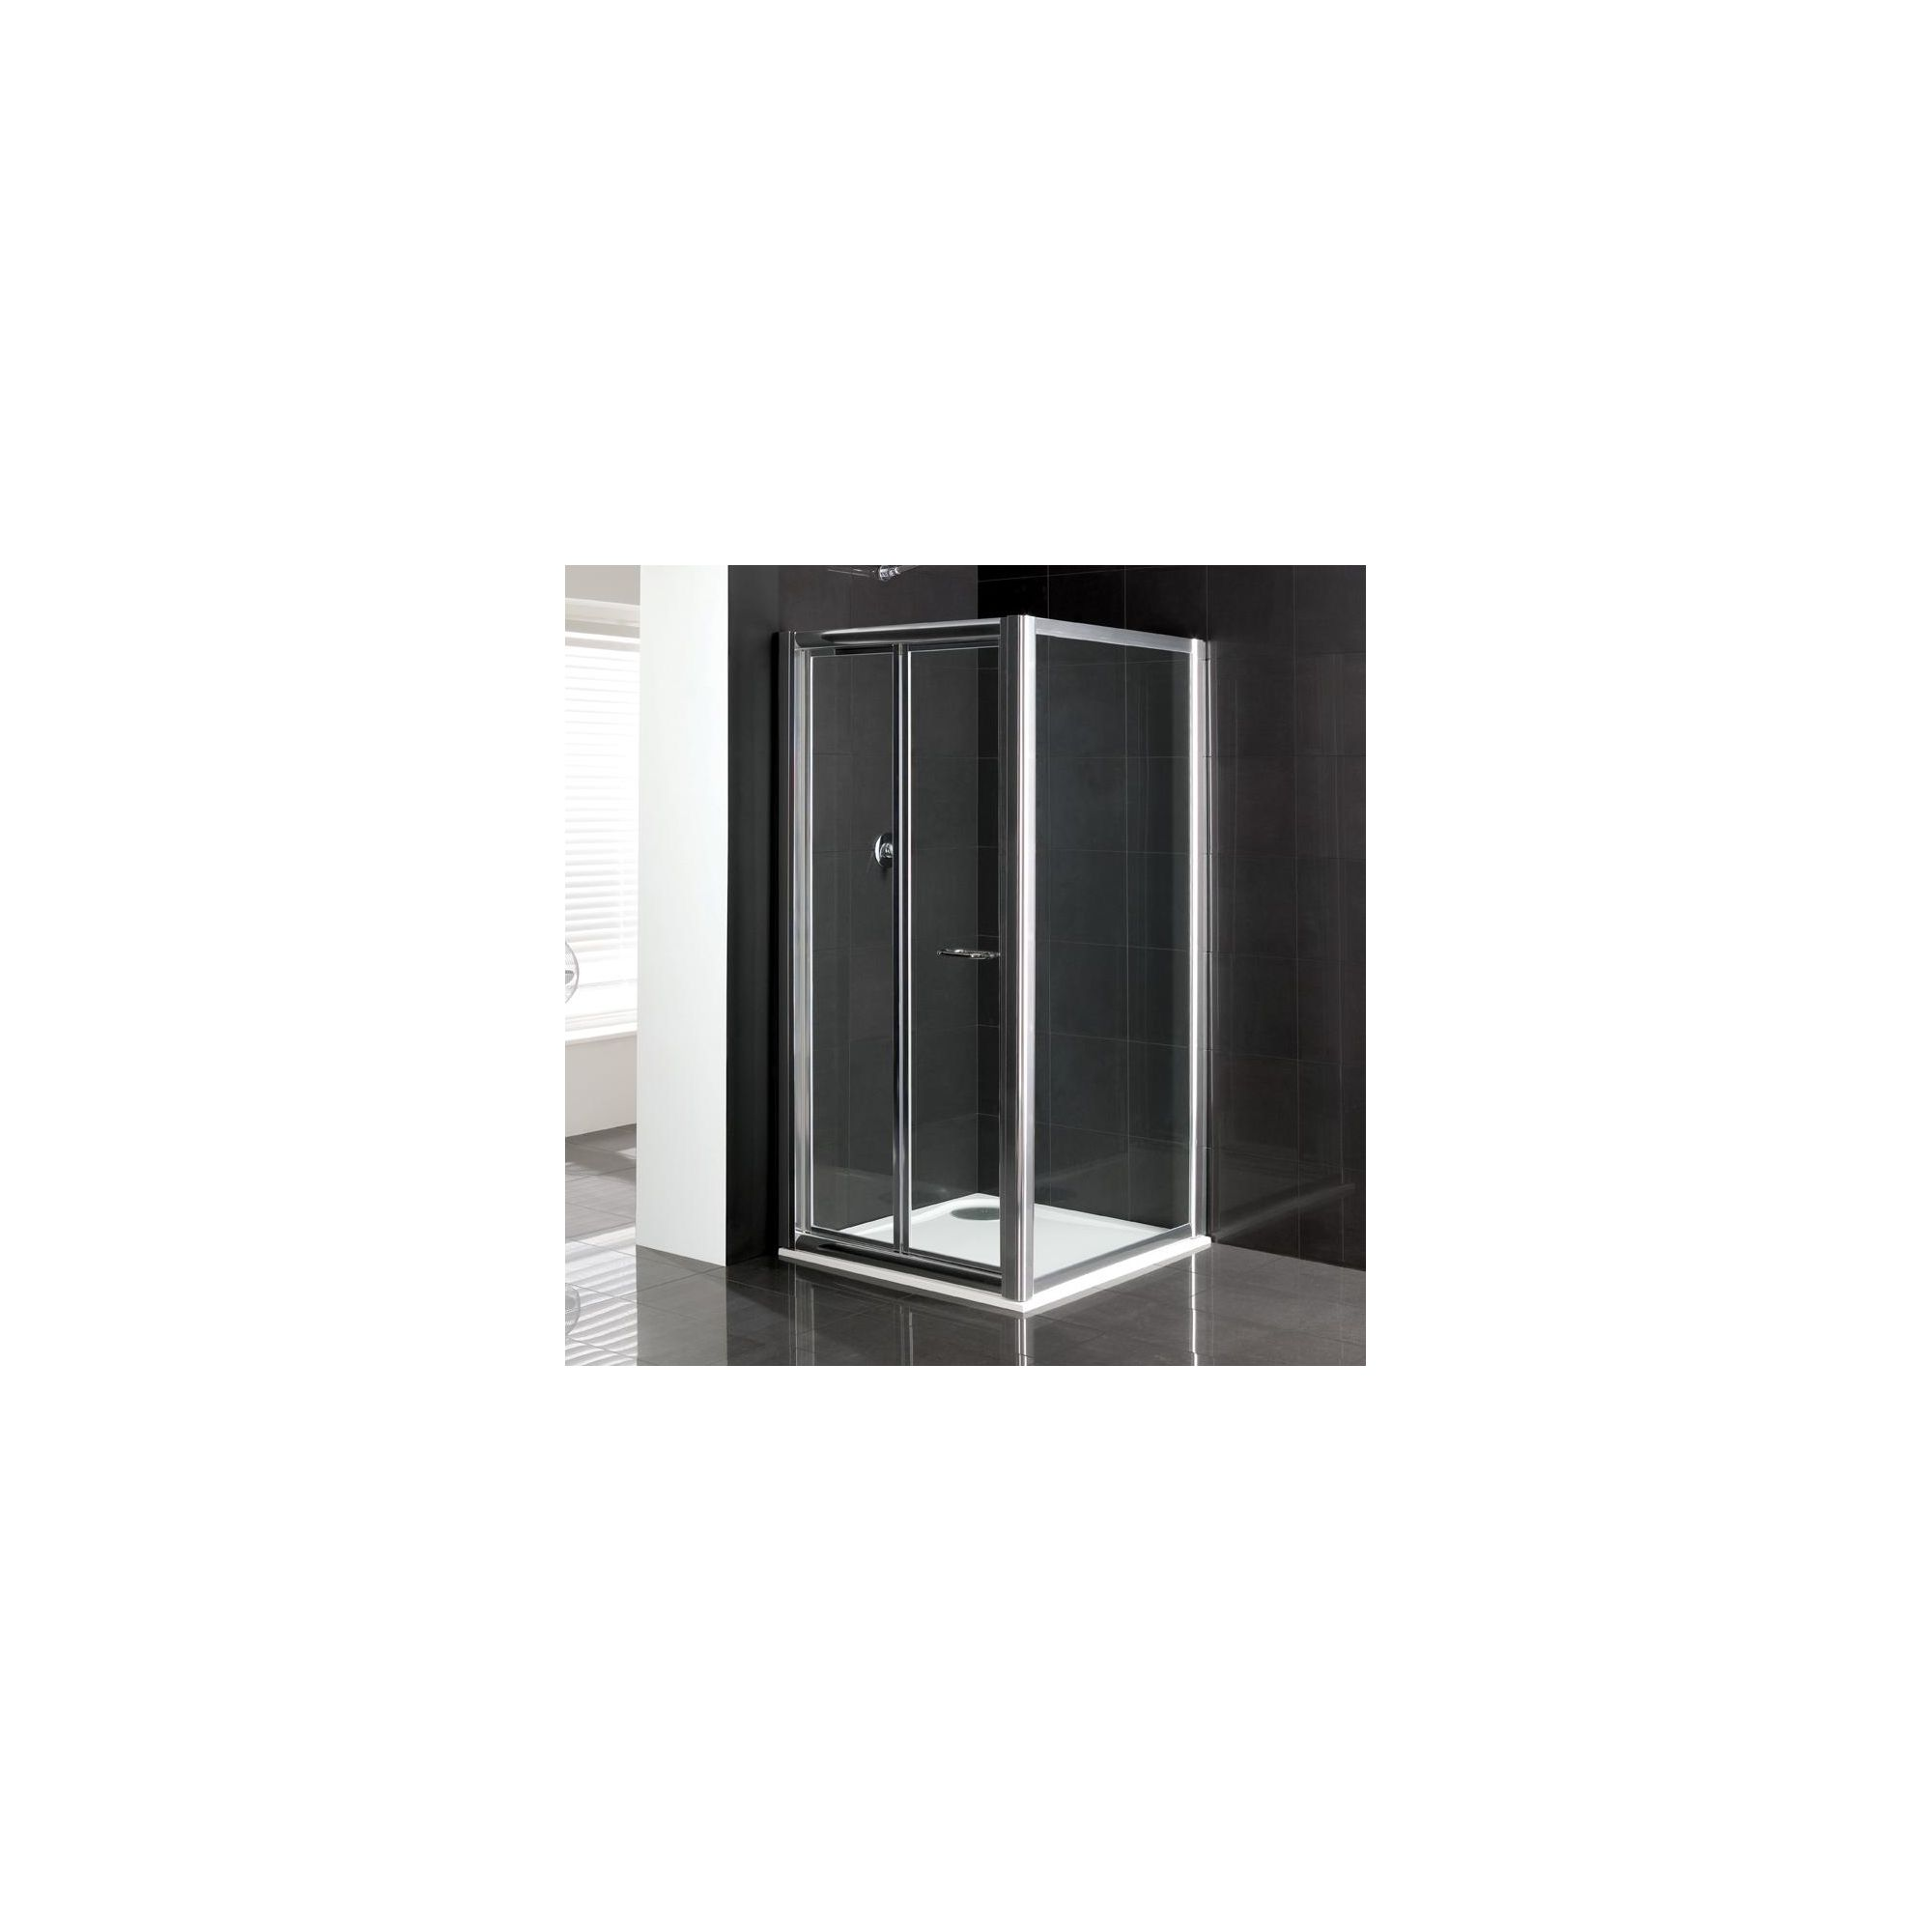 Duchy Elite Silver Bi-Fold Door Shower Enclosure, 800mm x 800mm, Standard Tray, 6mm Glass at Tescos Direct